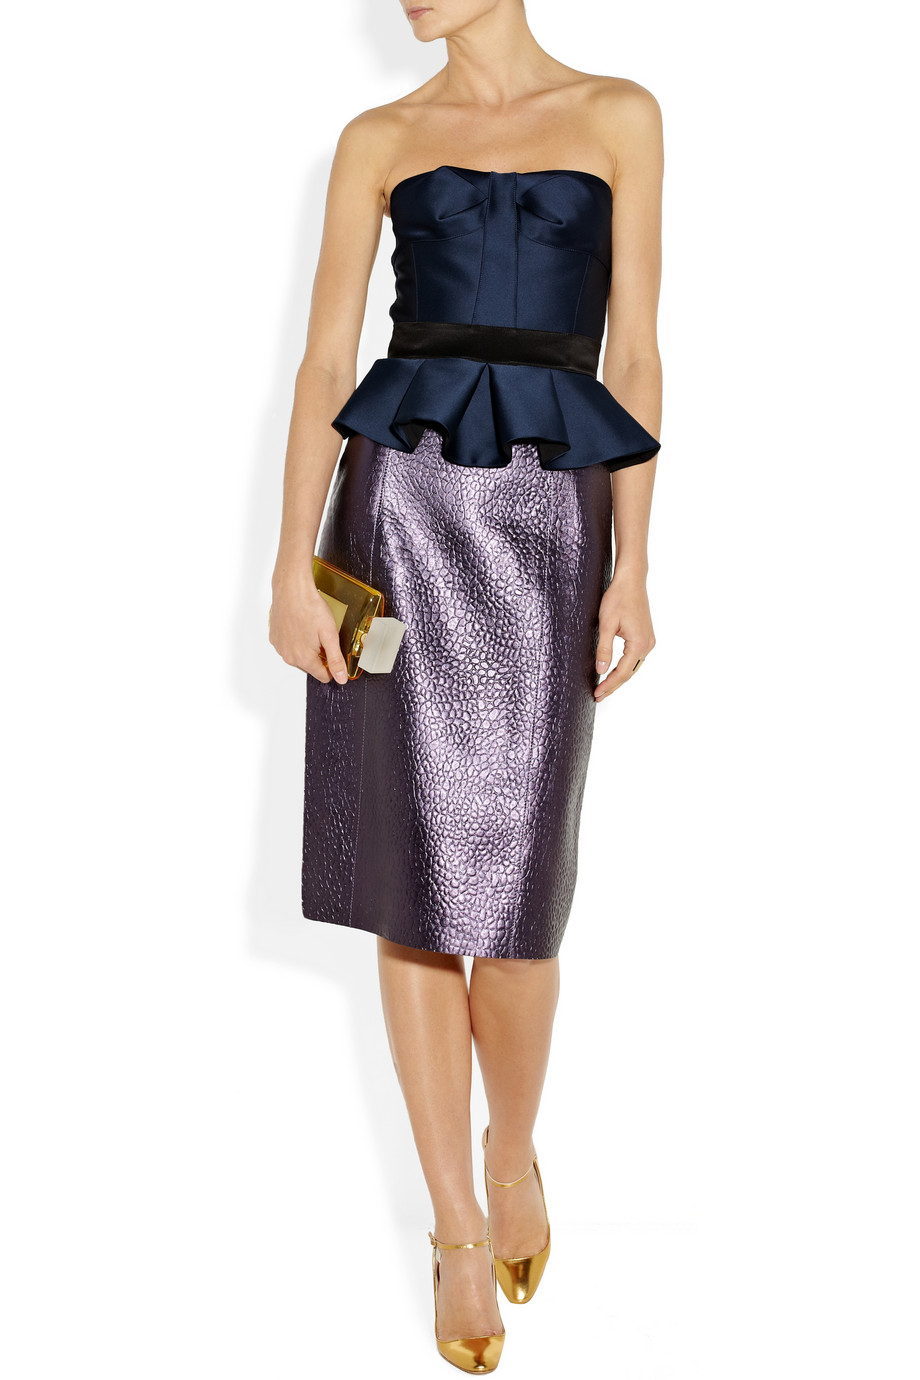 Burberry Prorsum Metallic textured-leather pencil skirt – 60% at THE OUTNET.COM